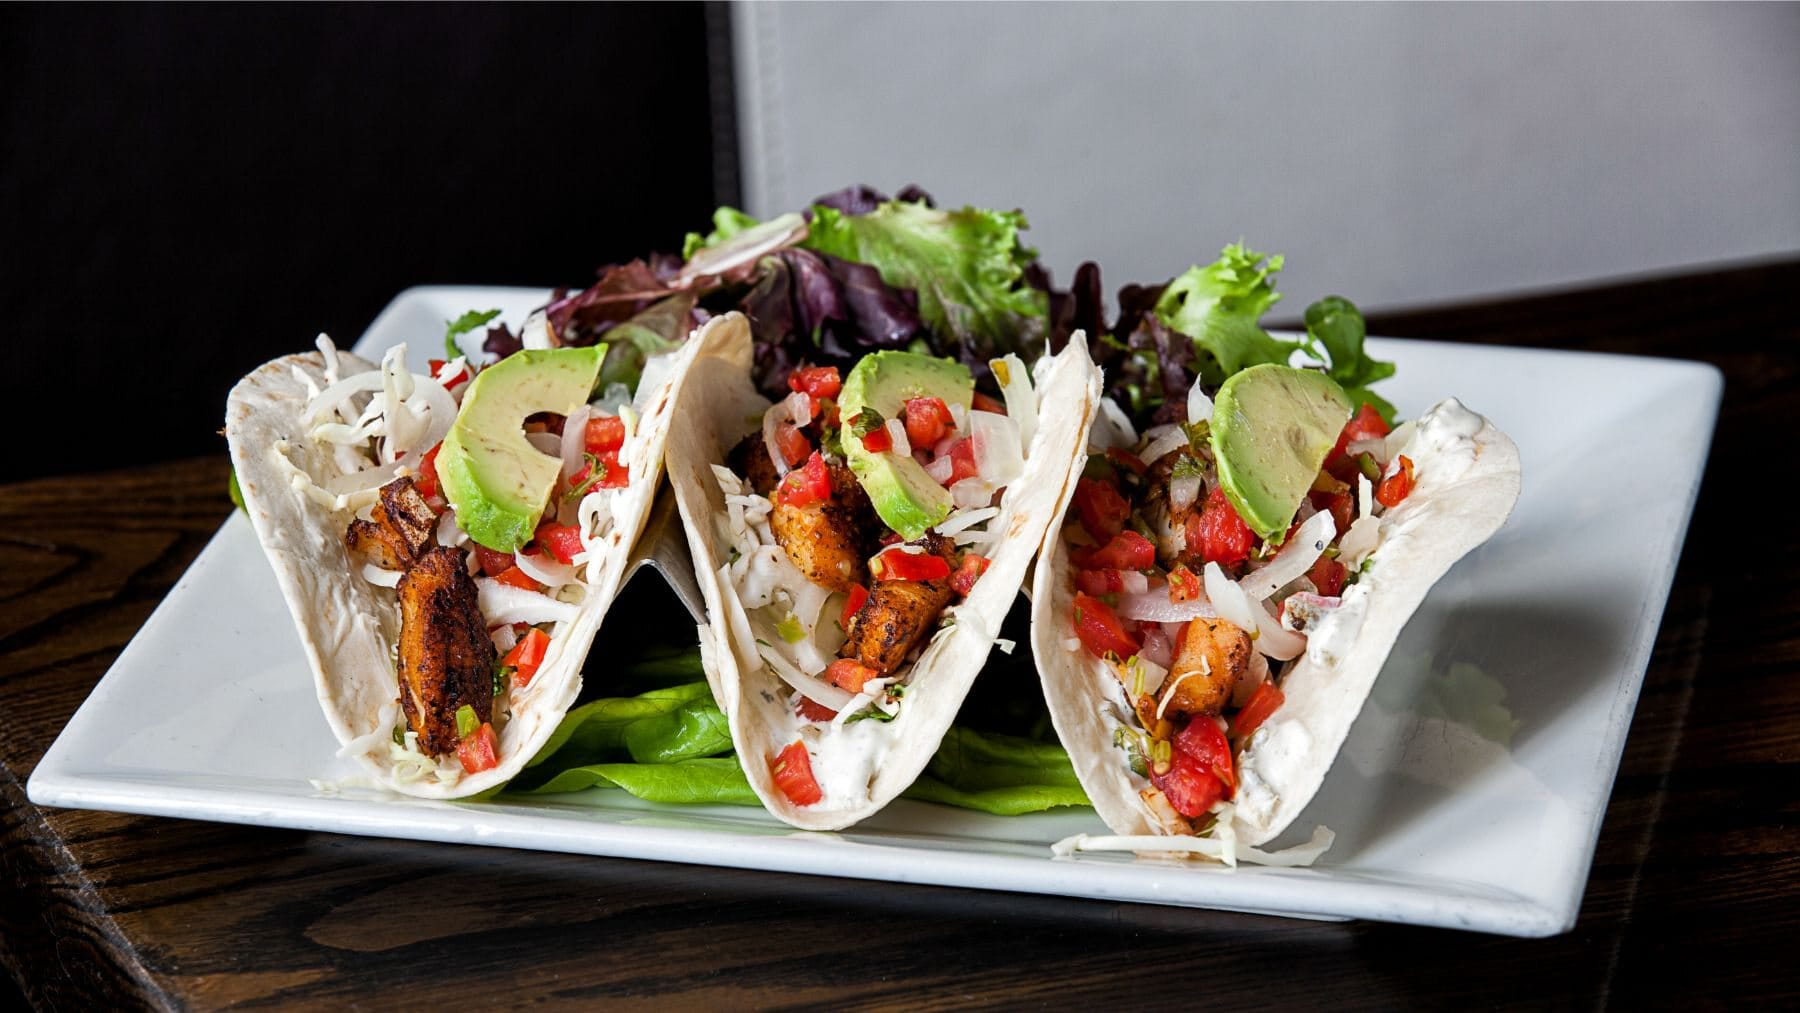 2 Max's Grille's Chili Roasted Fish Tacos Credit Gyorgy Papp Papphoto